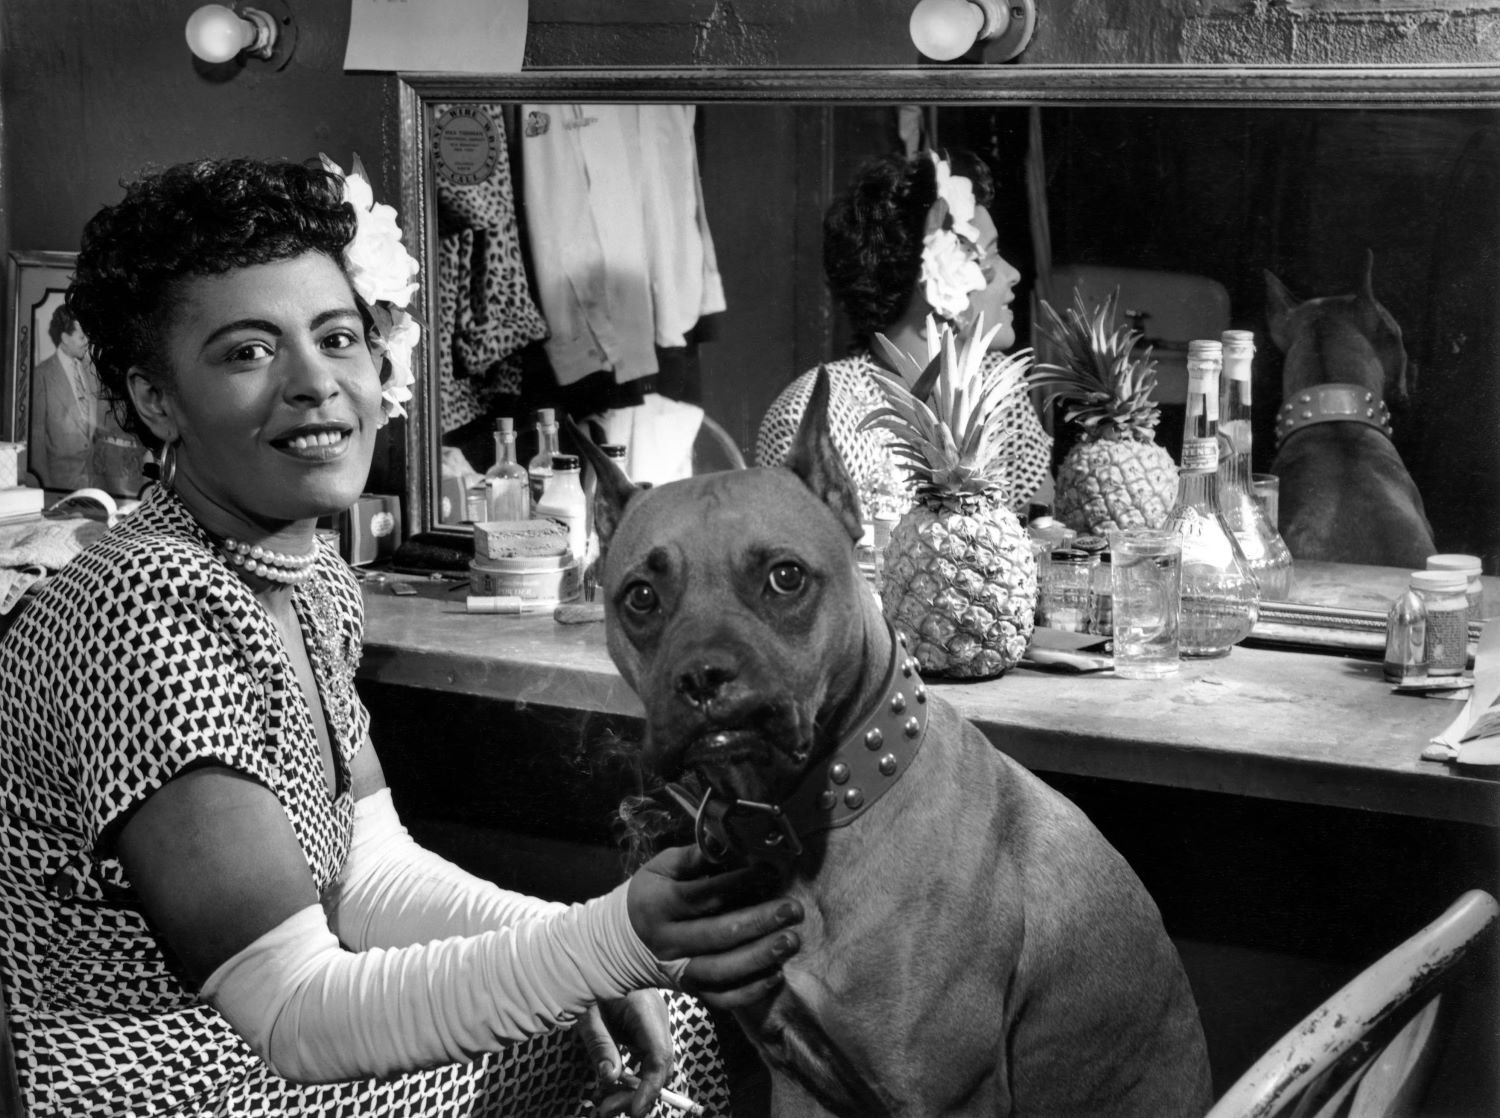 Billie Holiday and her dog